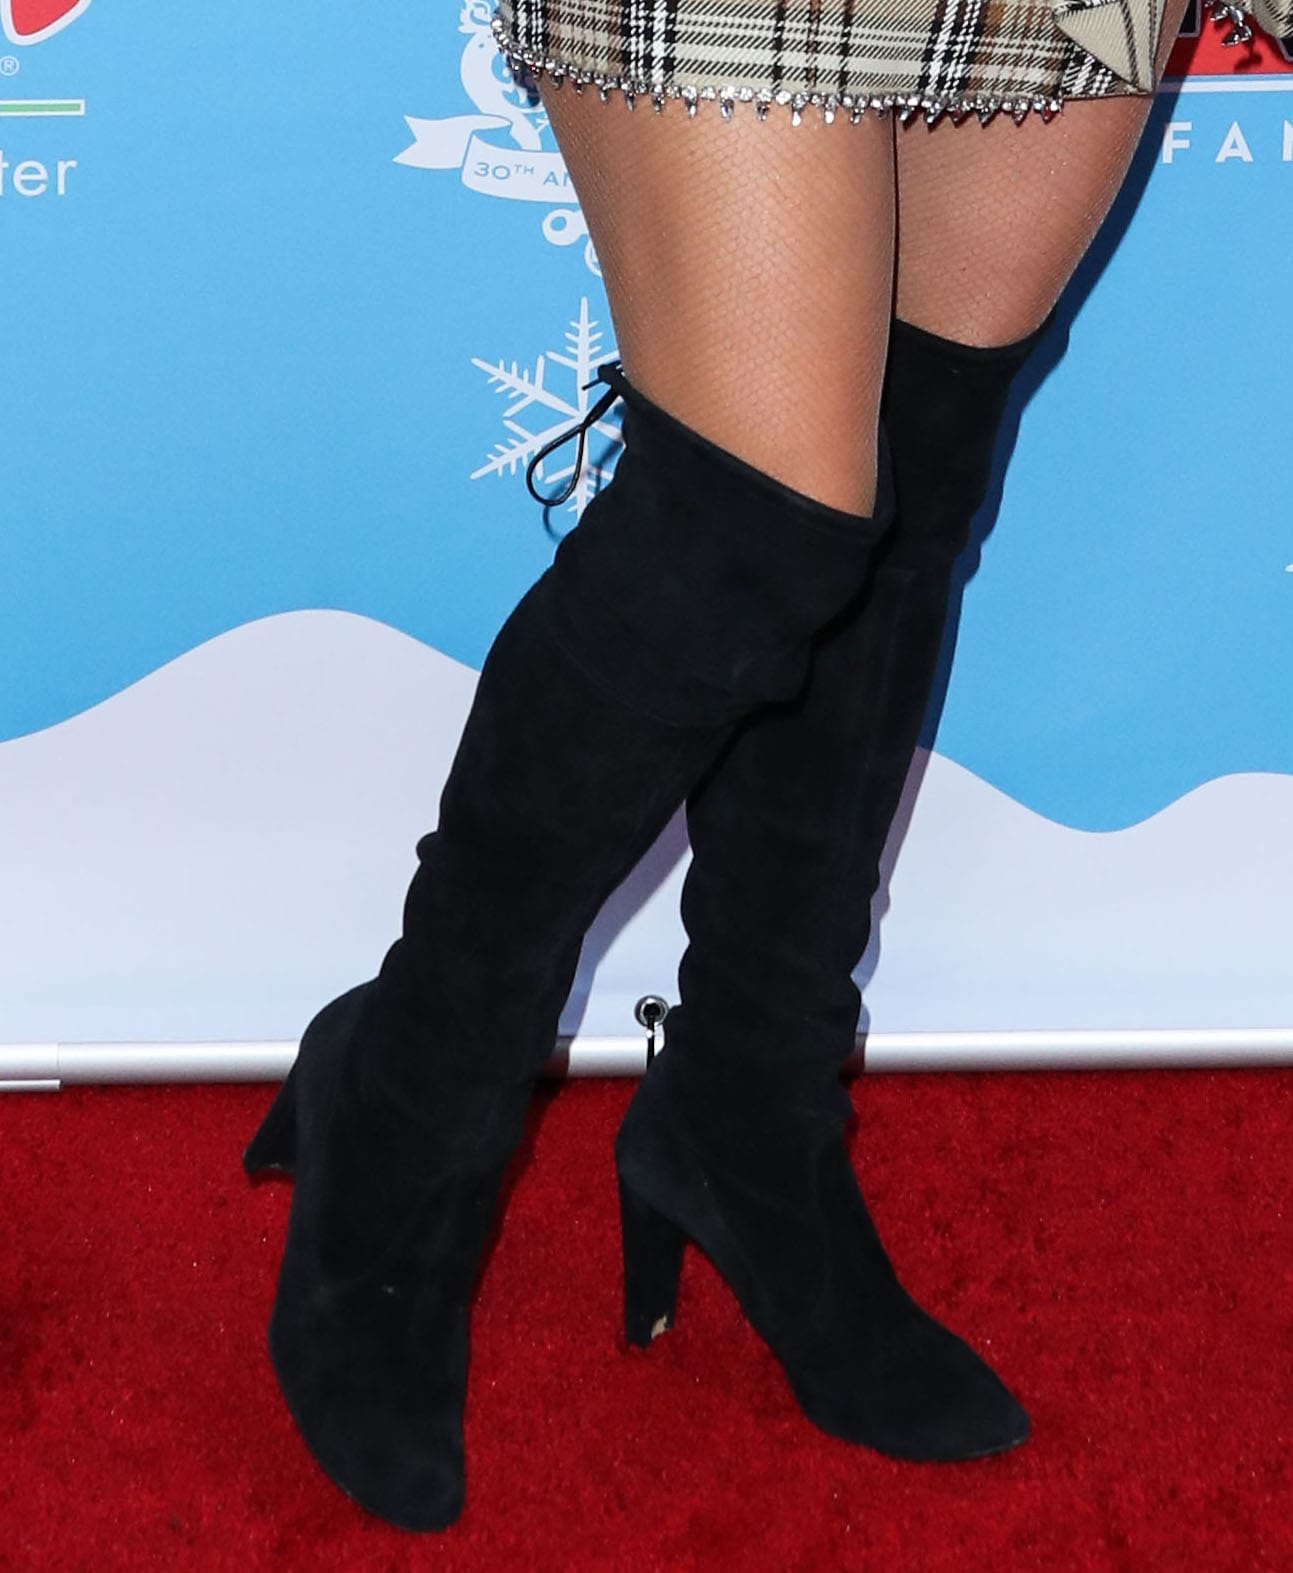 Paris Hilton completes her holiday look with Stuart Weitzman Highland over-the-knee boots